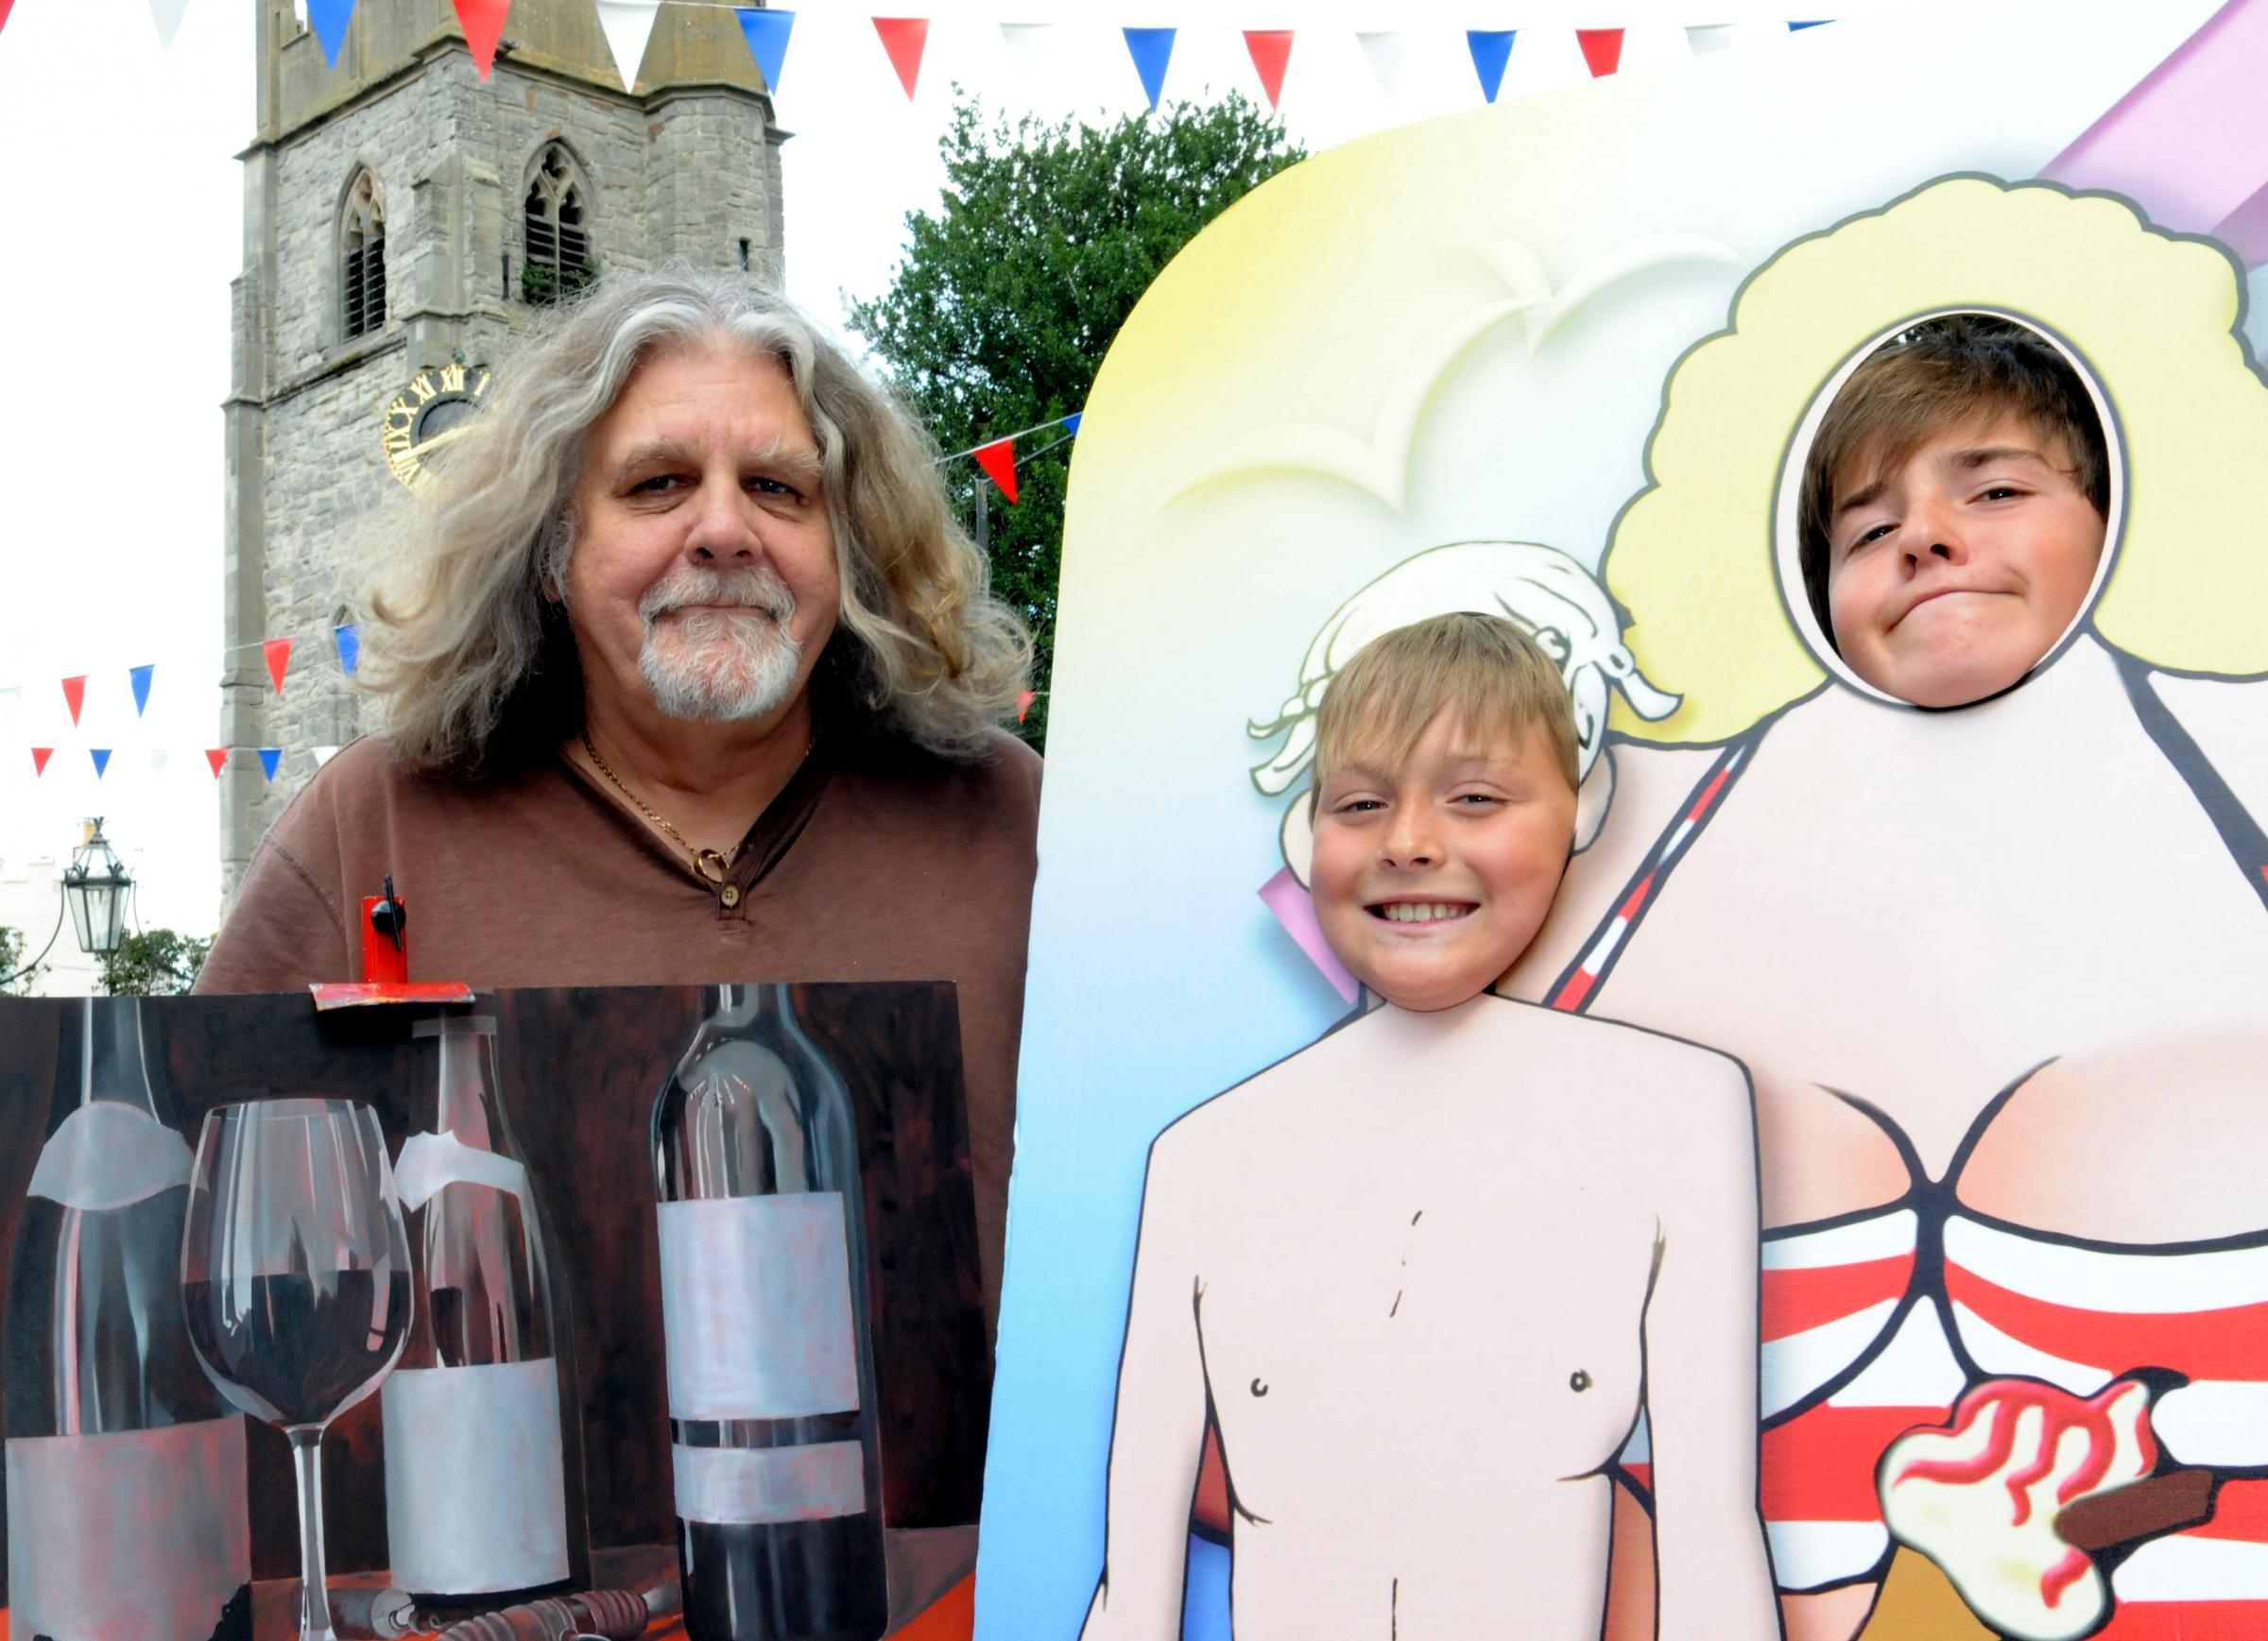 Alcester is to host its first Arts Festival. From left Artist Peter Kotka with his artwork titled 'The French Connection' with Tom Evans, nine, and Ben Evans, 14. To buy  image, RLB341404, visit redditchadvertiser.co.uk/pictures.